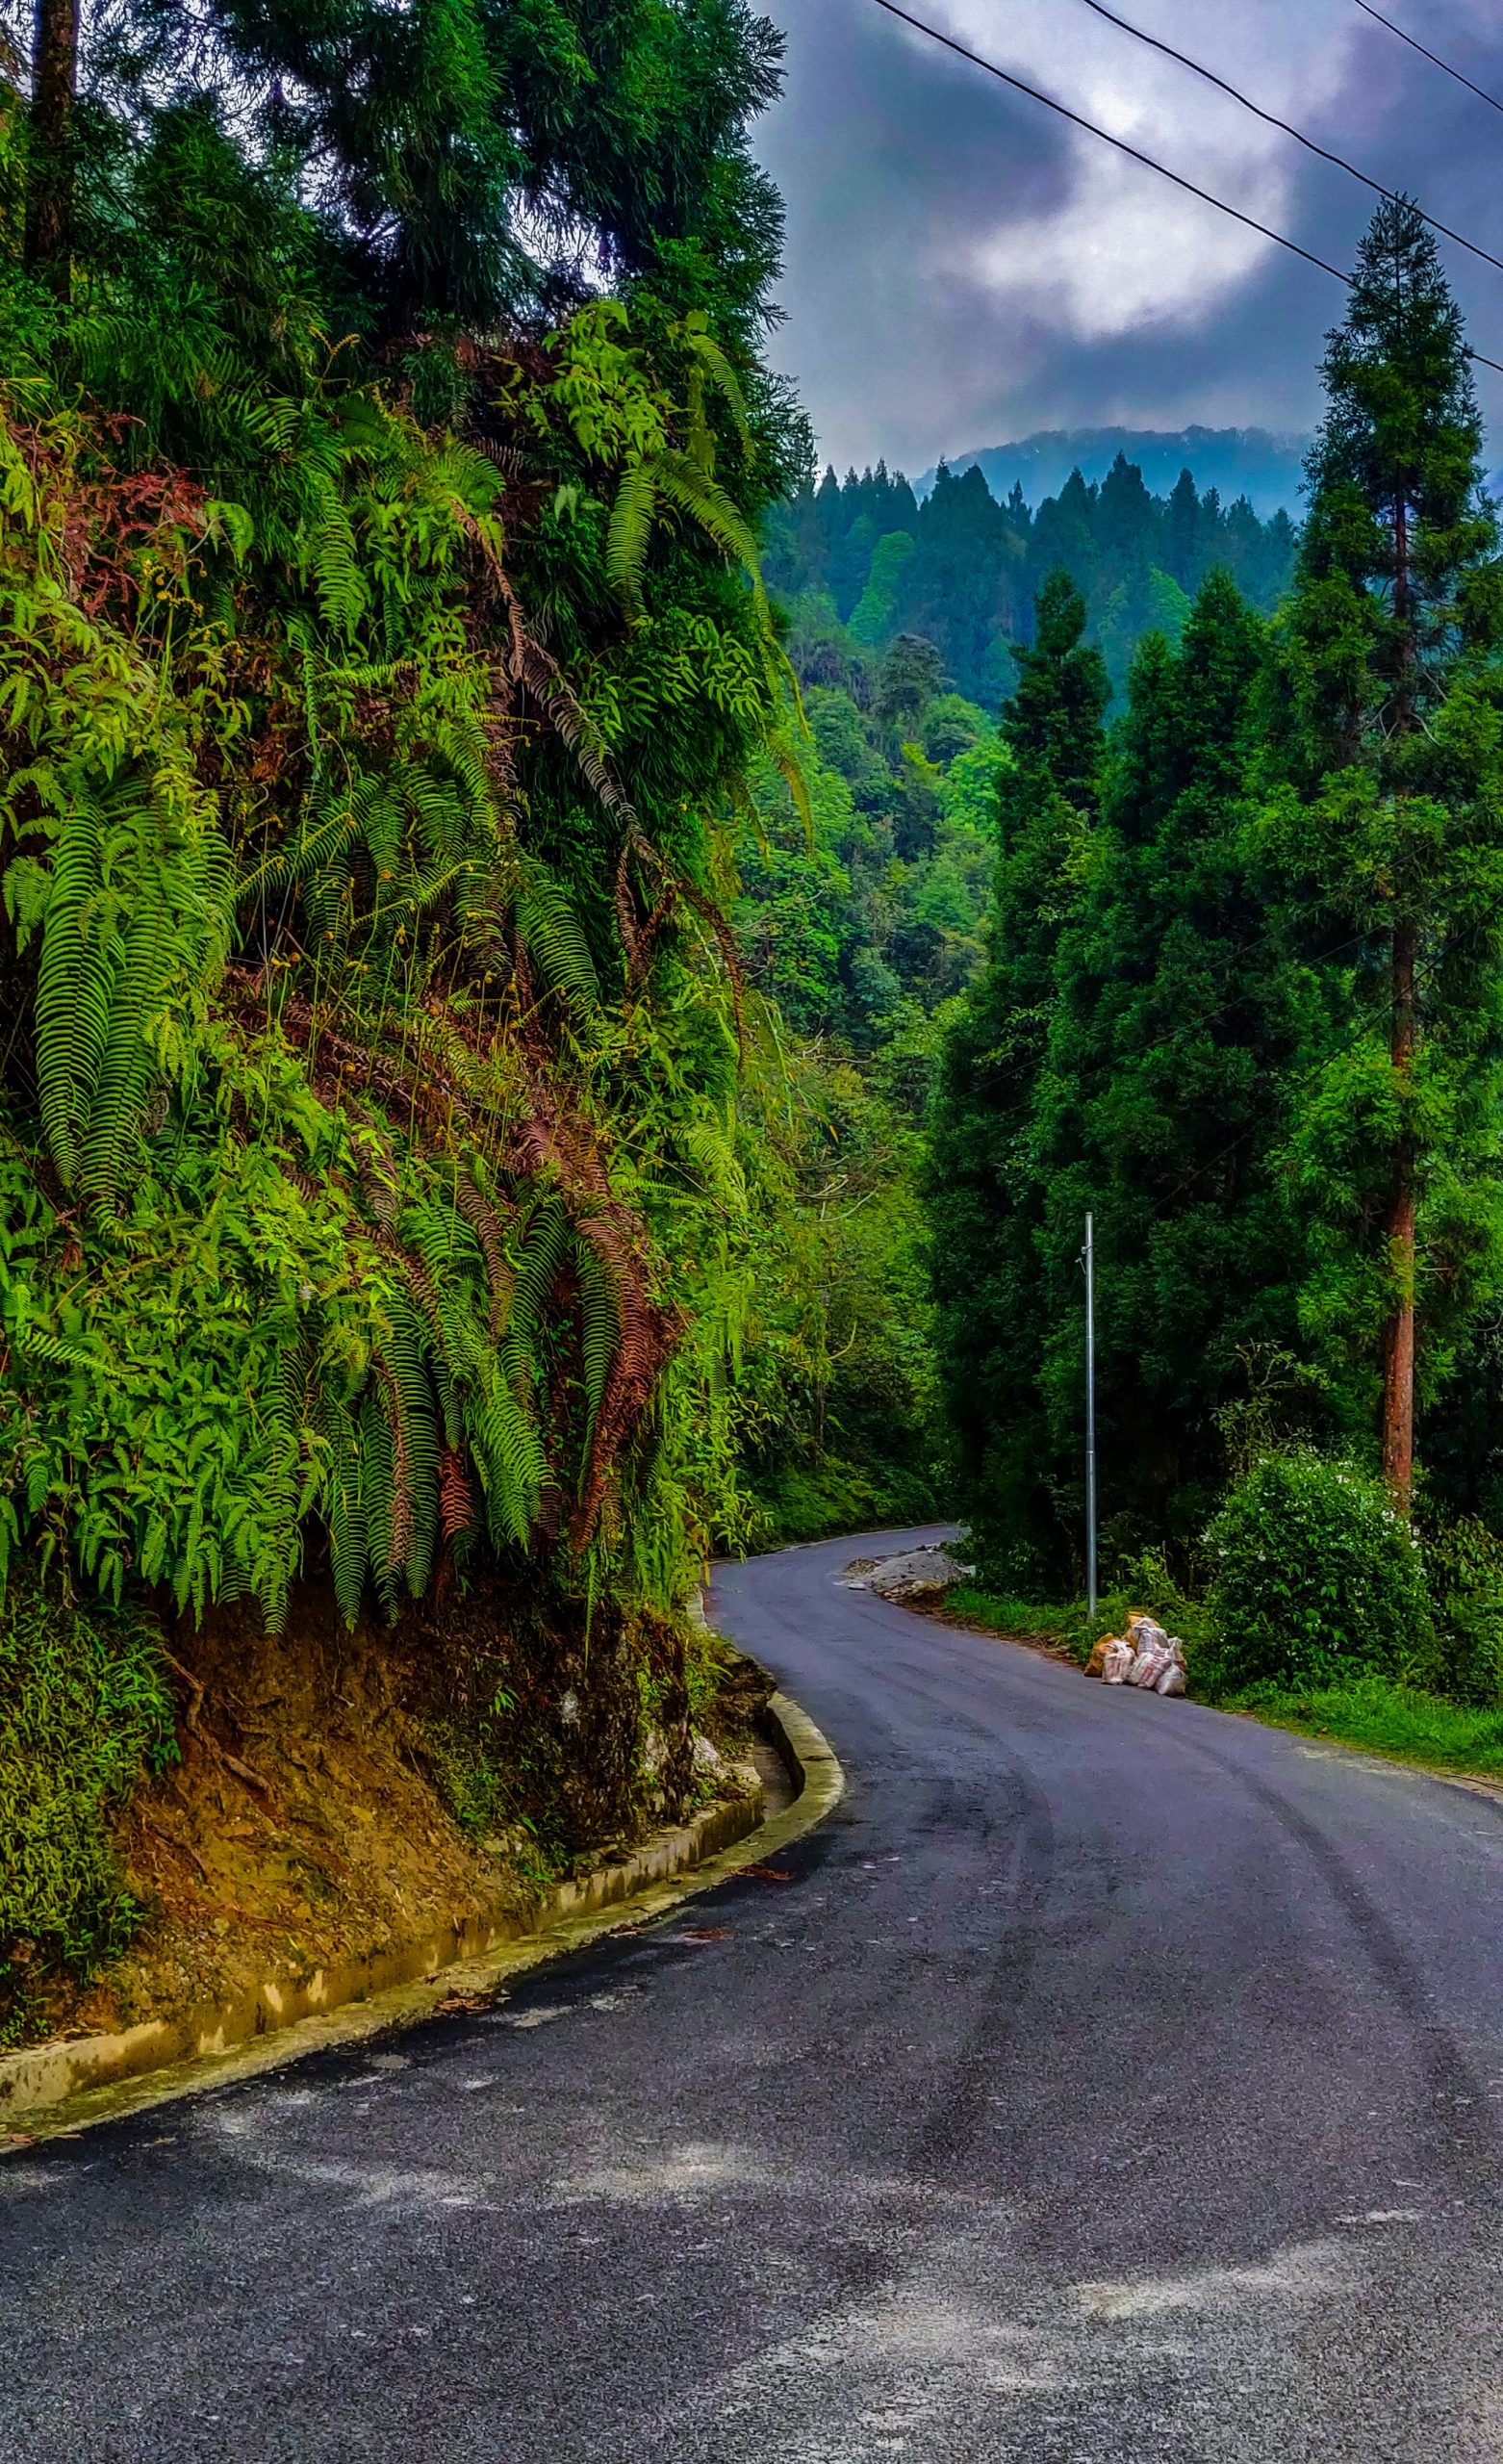 A Road in a Tropical Forest